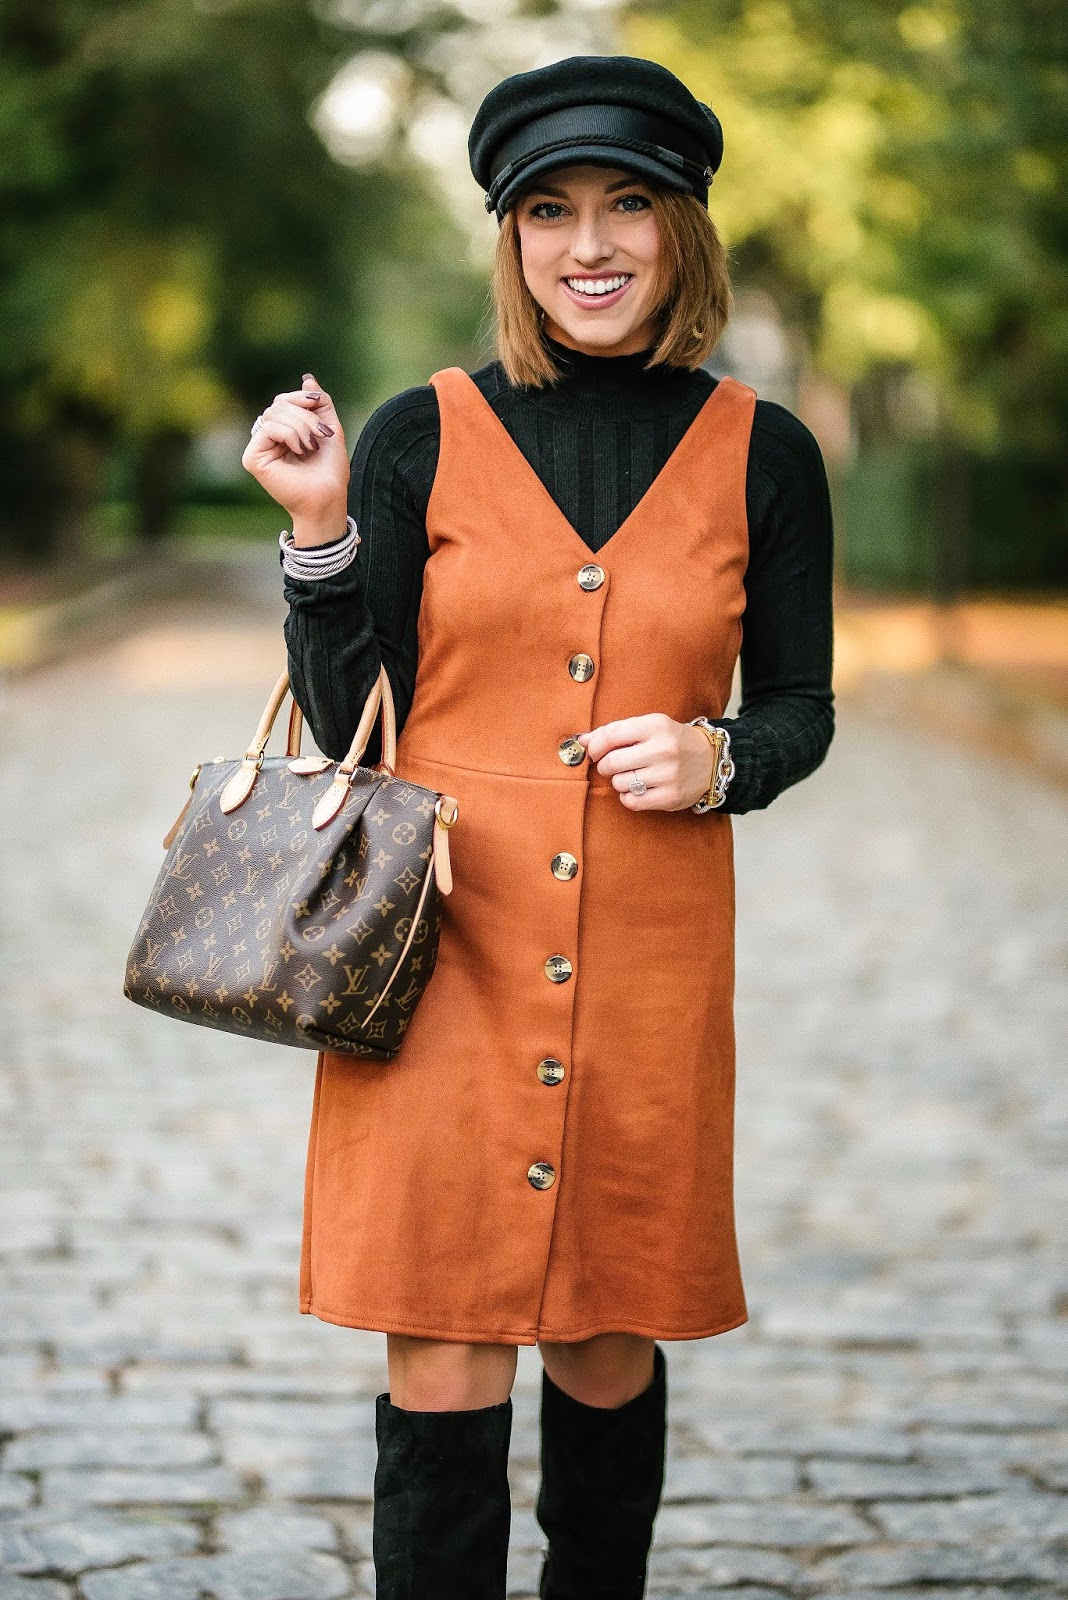 Brown & Black for Fall + How to style a Baker Boy Hat - Something Delightful Blog